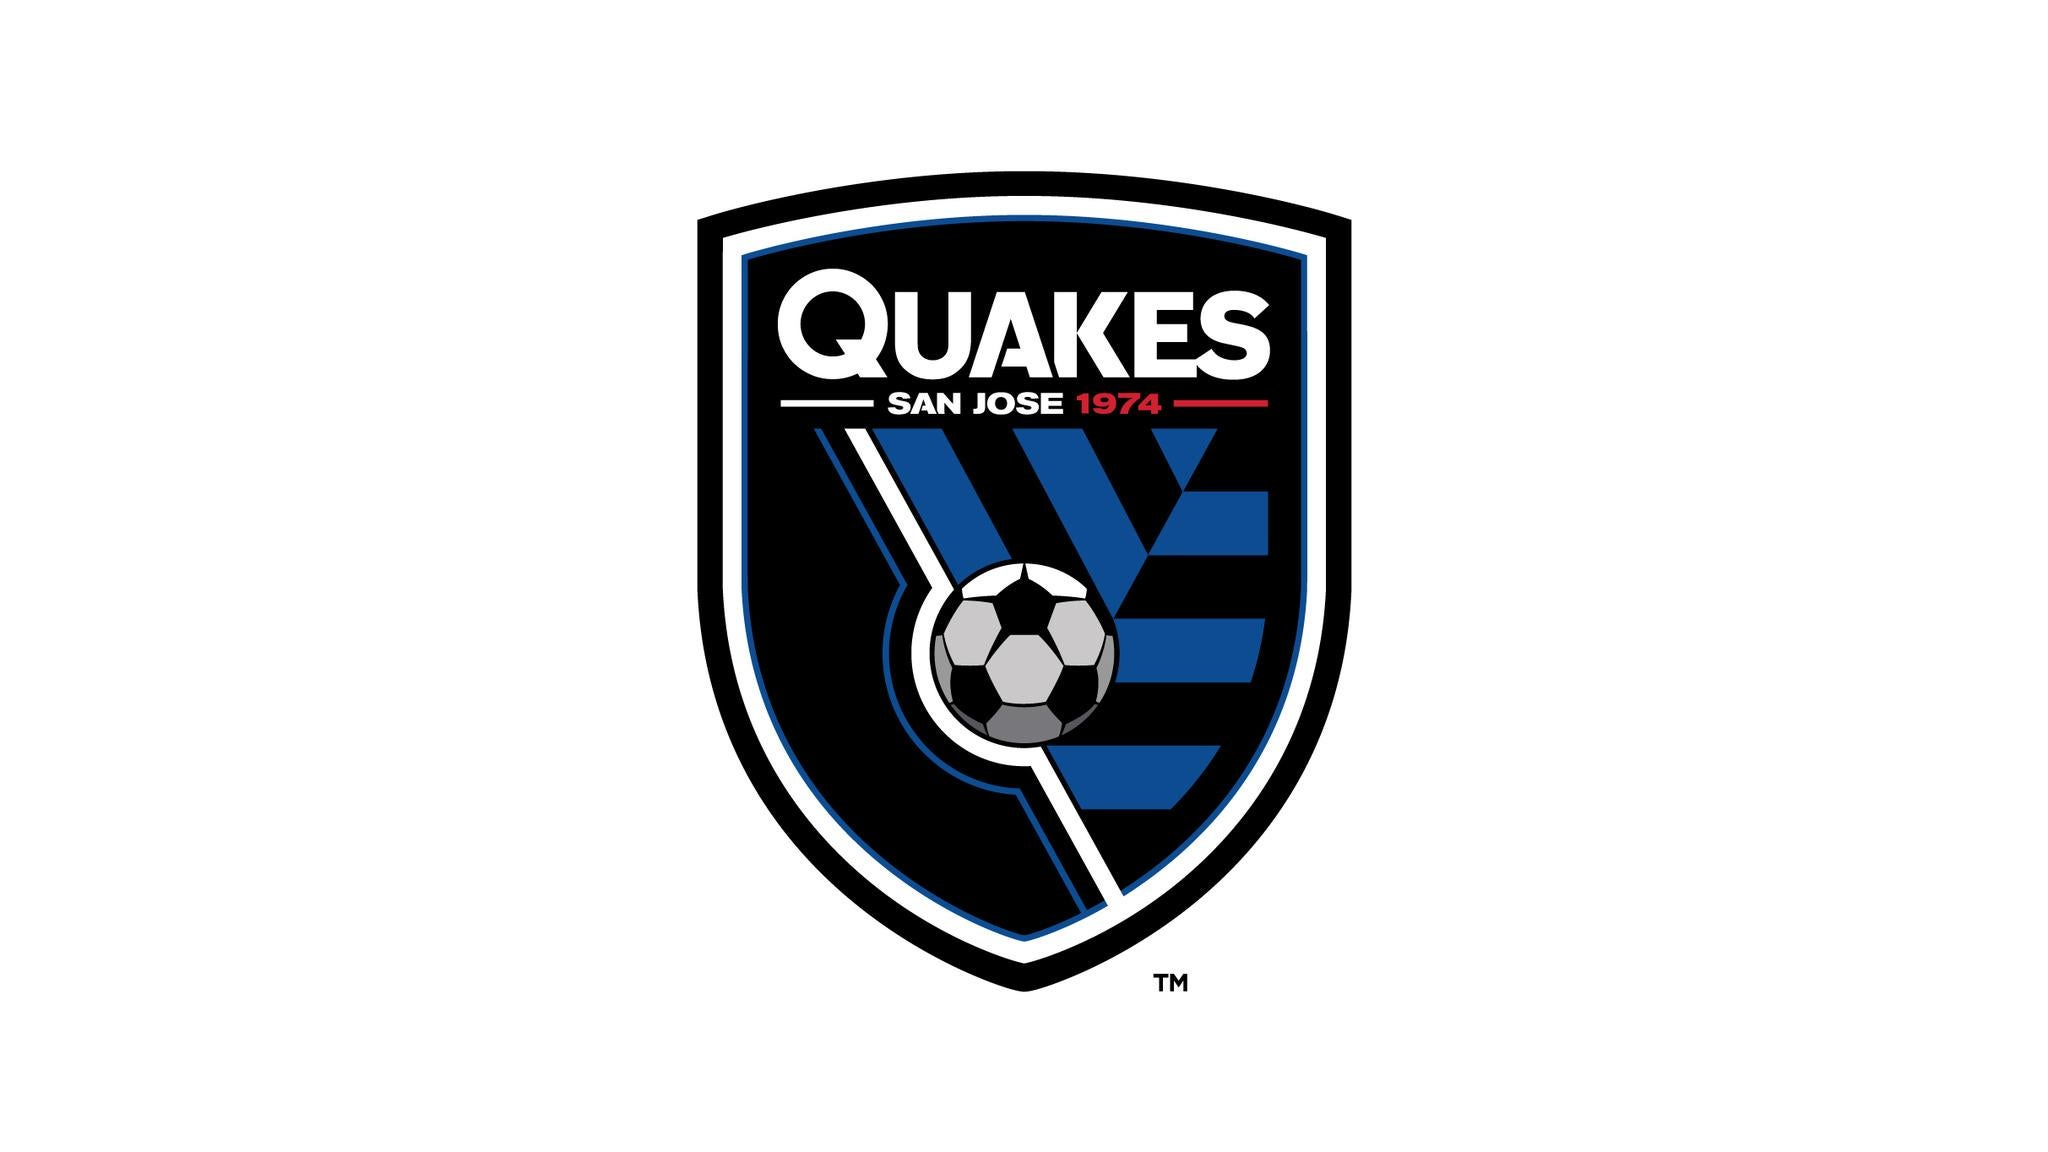 San Jose Earthquakes vs. Atlanta United FC at Avaya Stadium